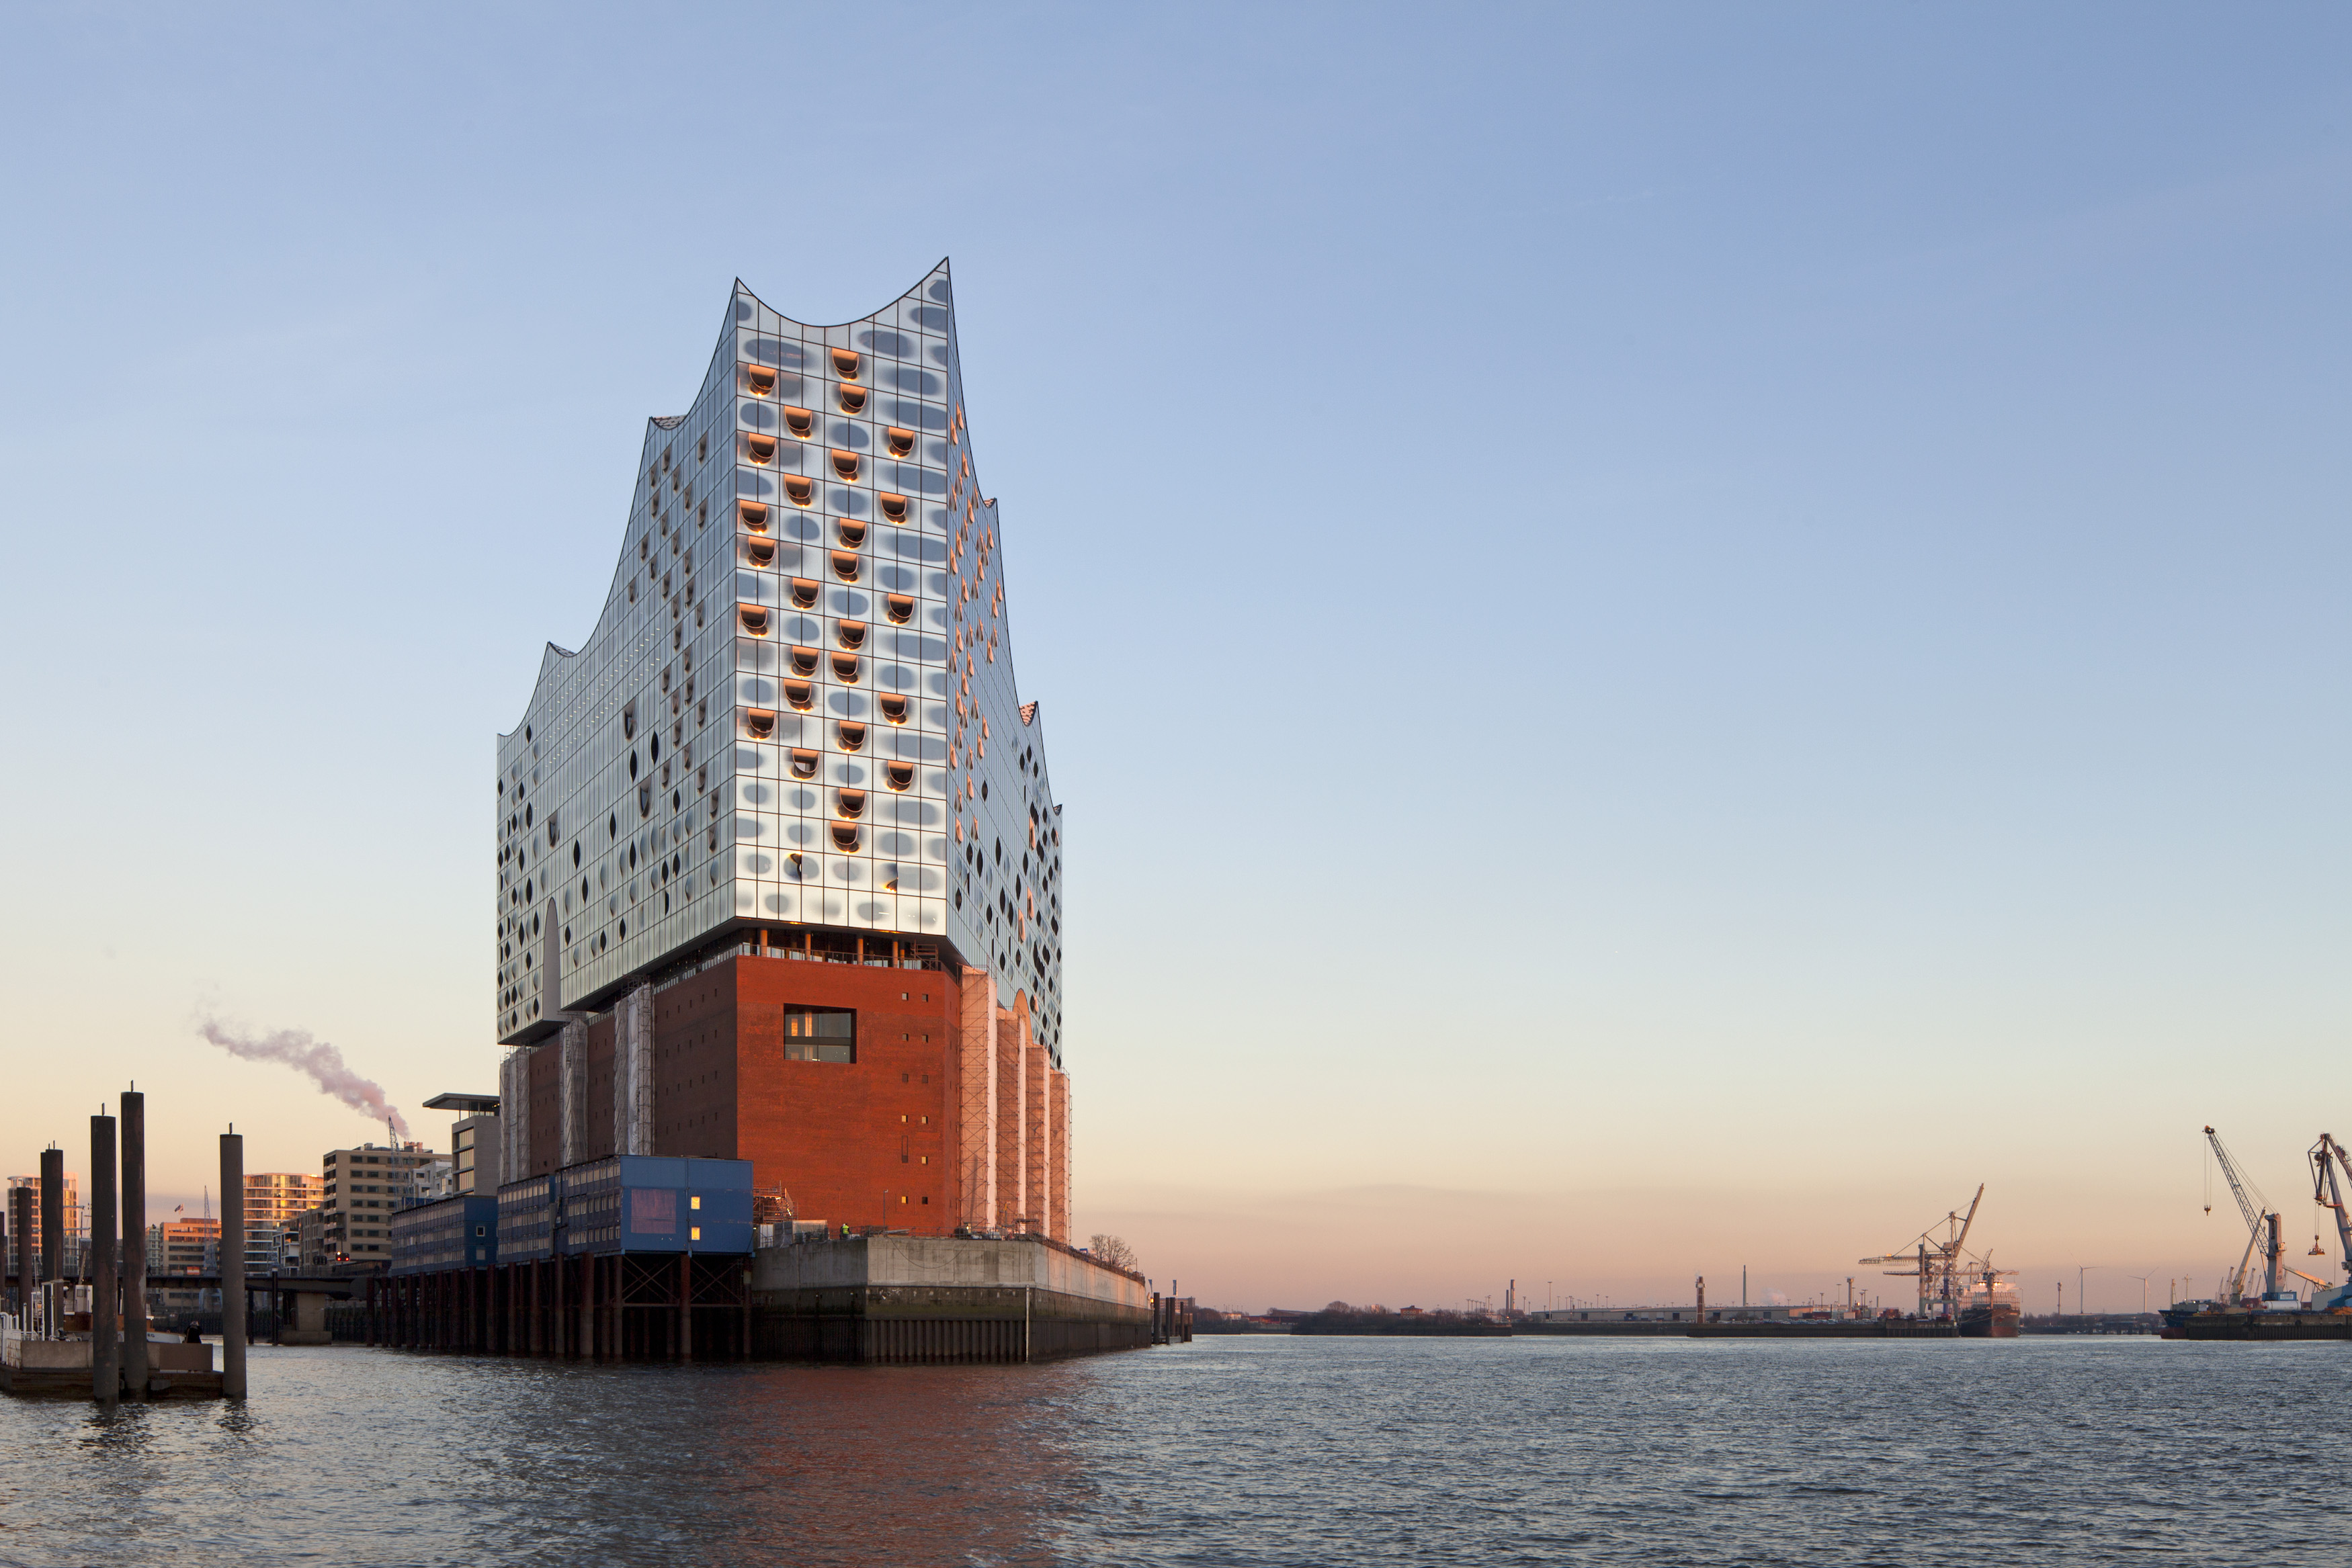 Elbphilharmonie Hamburg is giving away 1,000 tickets for the opening concerts